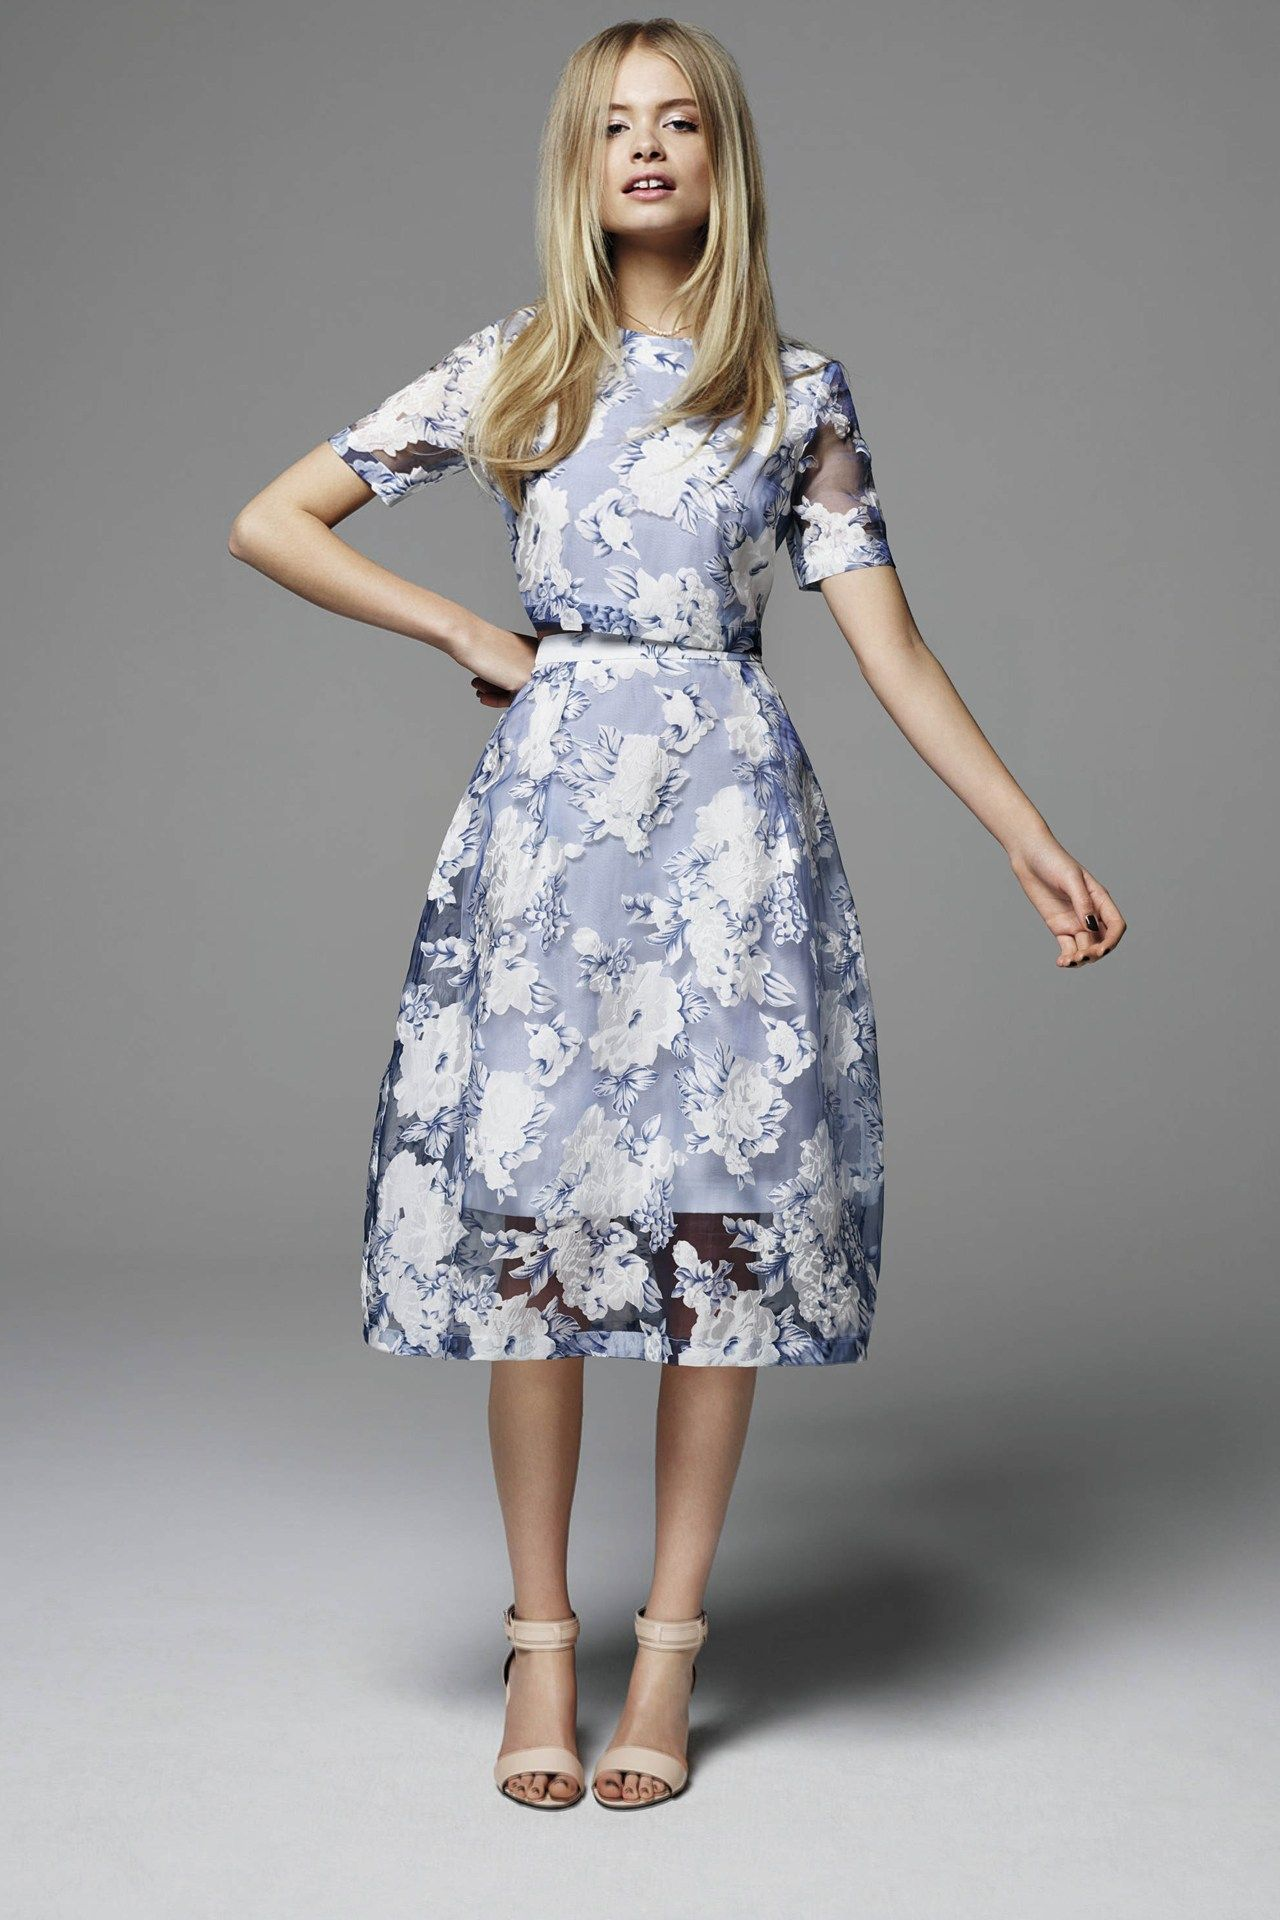 Breastfeeding dresses for weddings  Look Book Love Miss Selfridge  Books Galleries and Collection